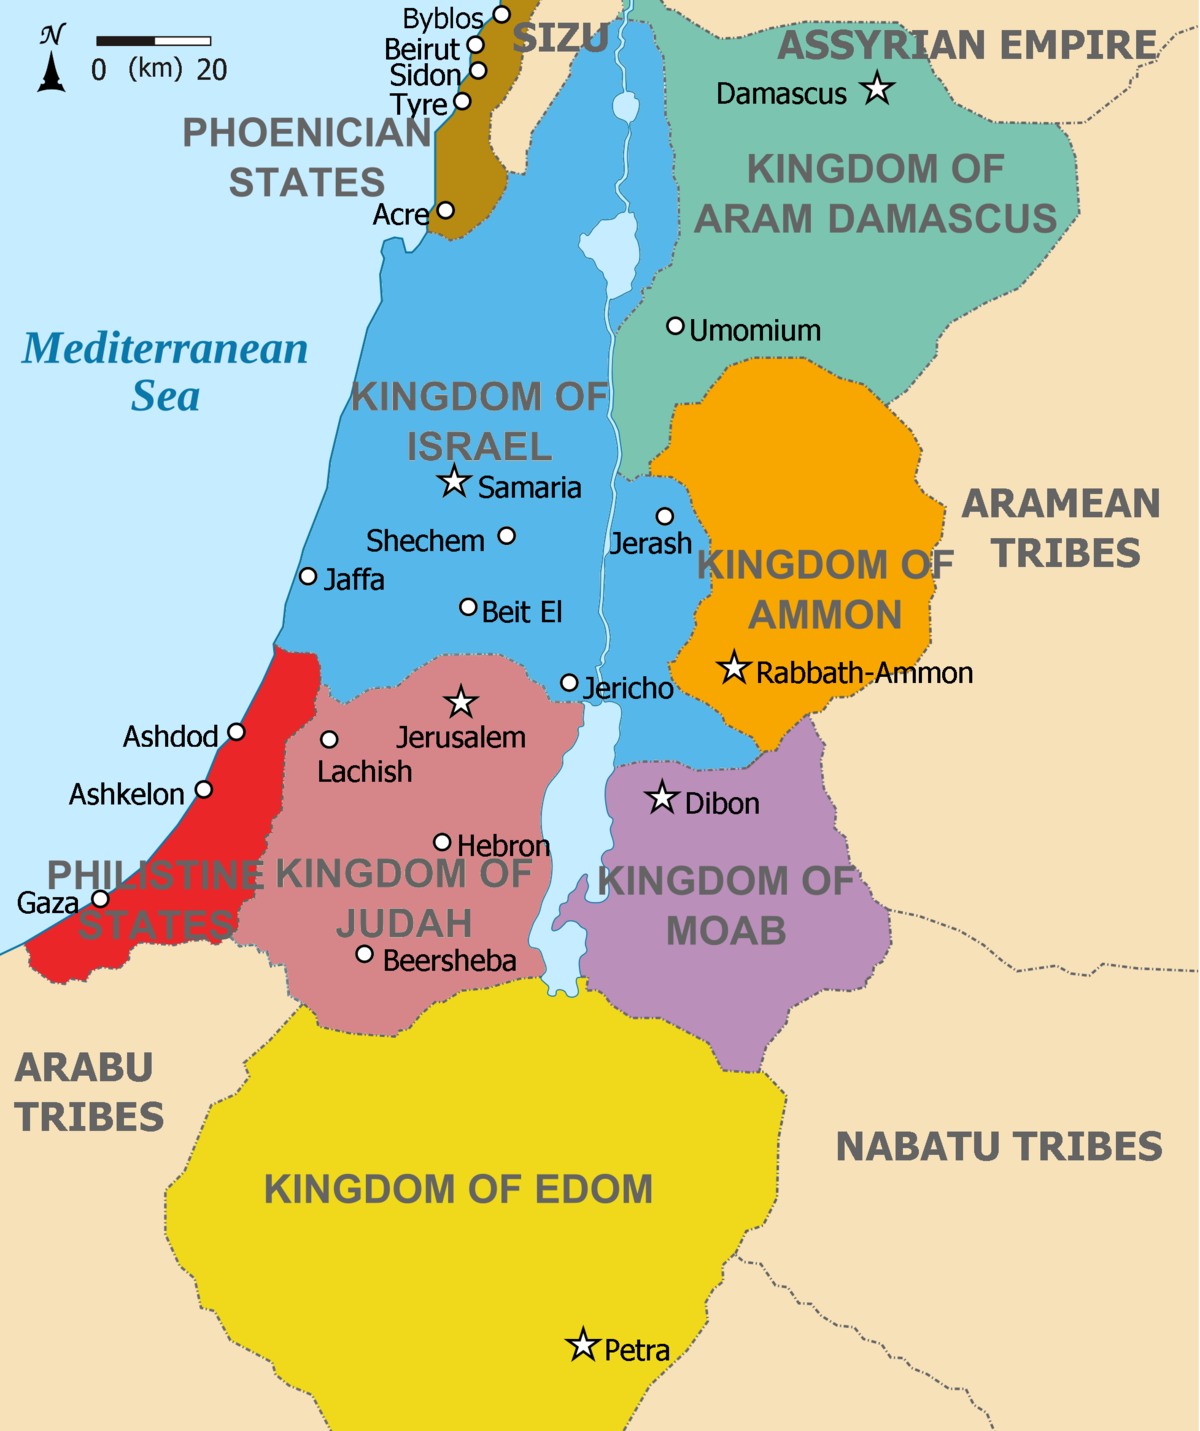 1200px-Kingdoms_of_the_Levant_Map_830.png